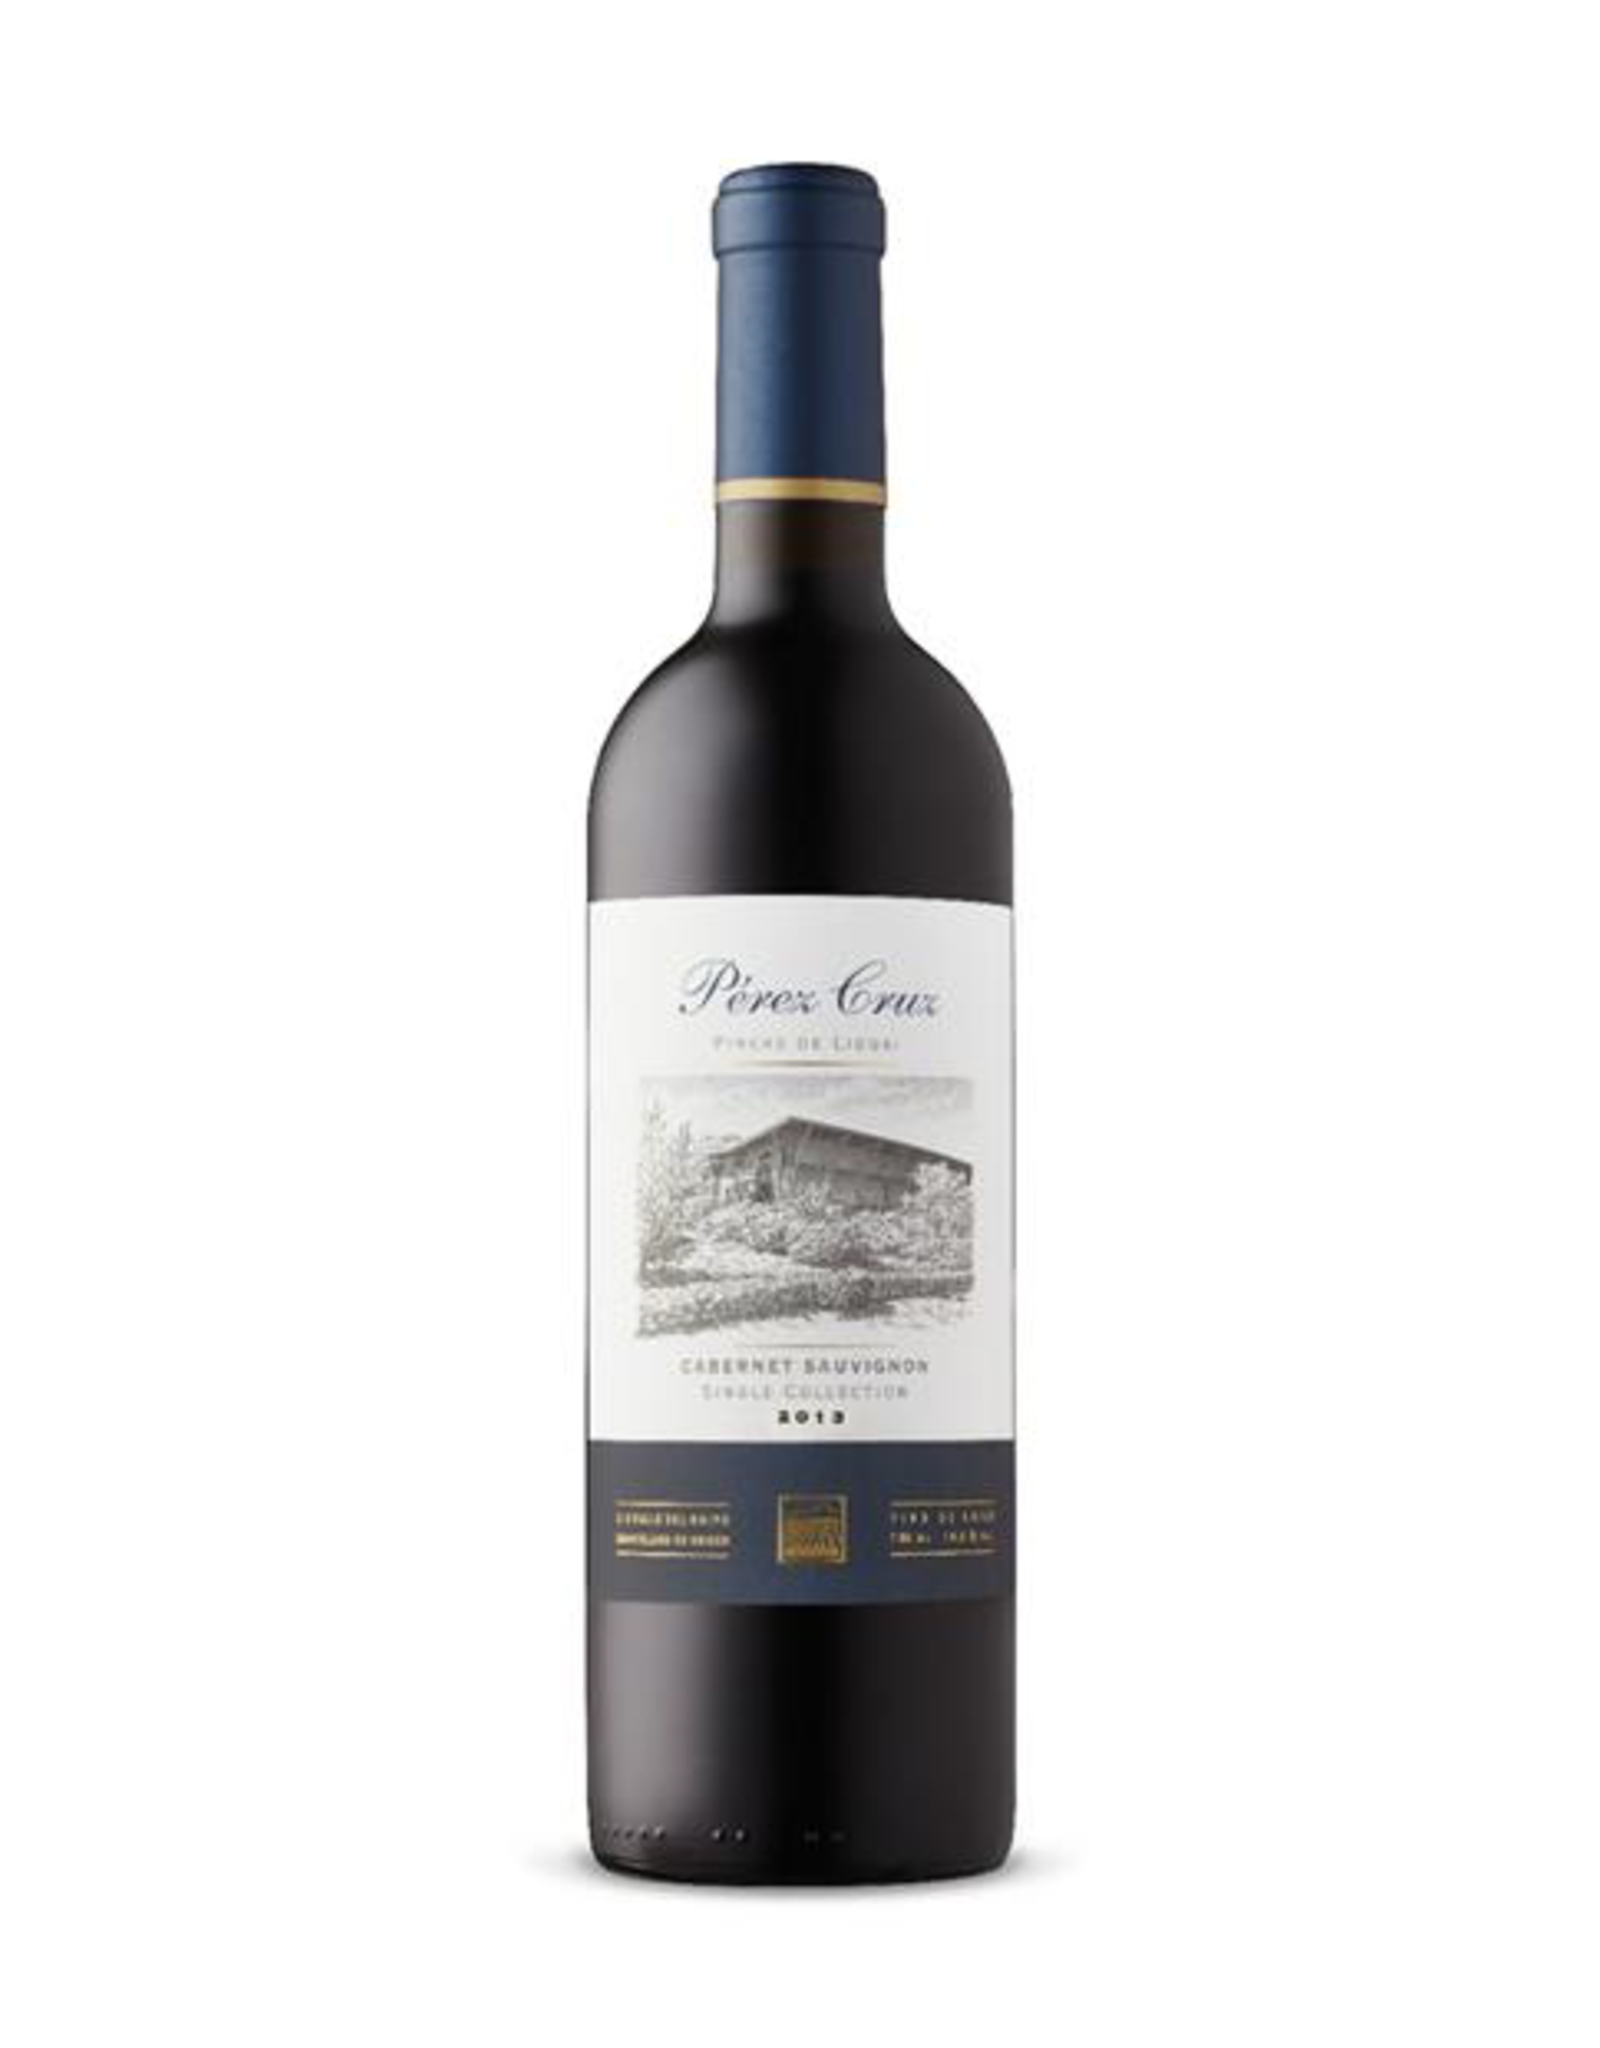 Red Wine 2012, Vina Perez Cruz Single Collection Pircas de Liguai, Cabernet Sauvignon, Maipo Andes, Maipo Valley, Chile, 14.5% Alc., CT86.5, TW93